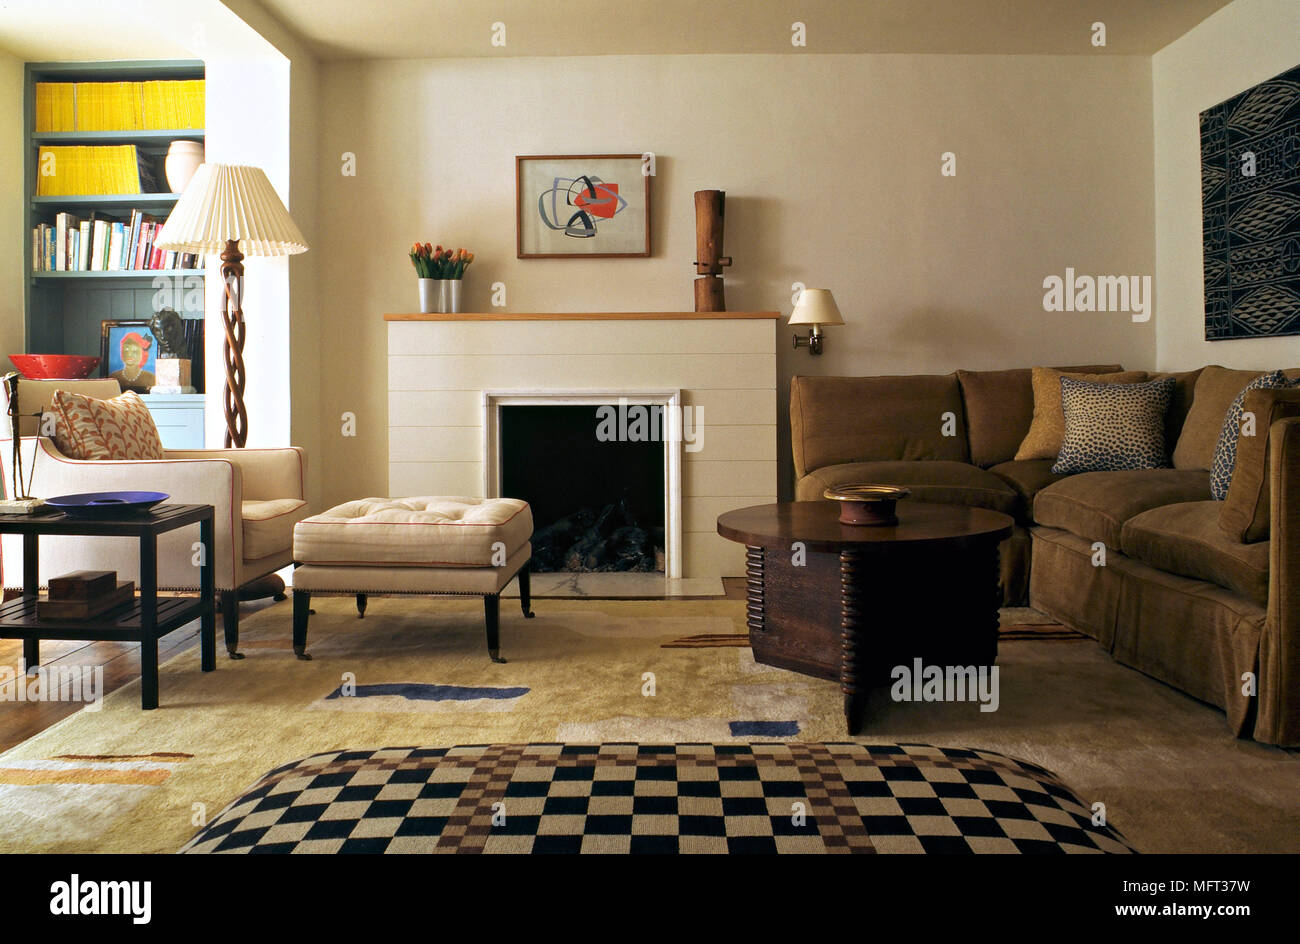 retro living room coffee table diy shelves in modern sitting fireplace upholstered ottoman corner sofa armchair interiors rooms fireplaces furniture